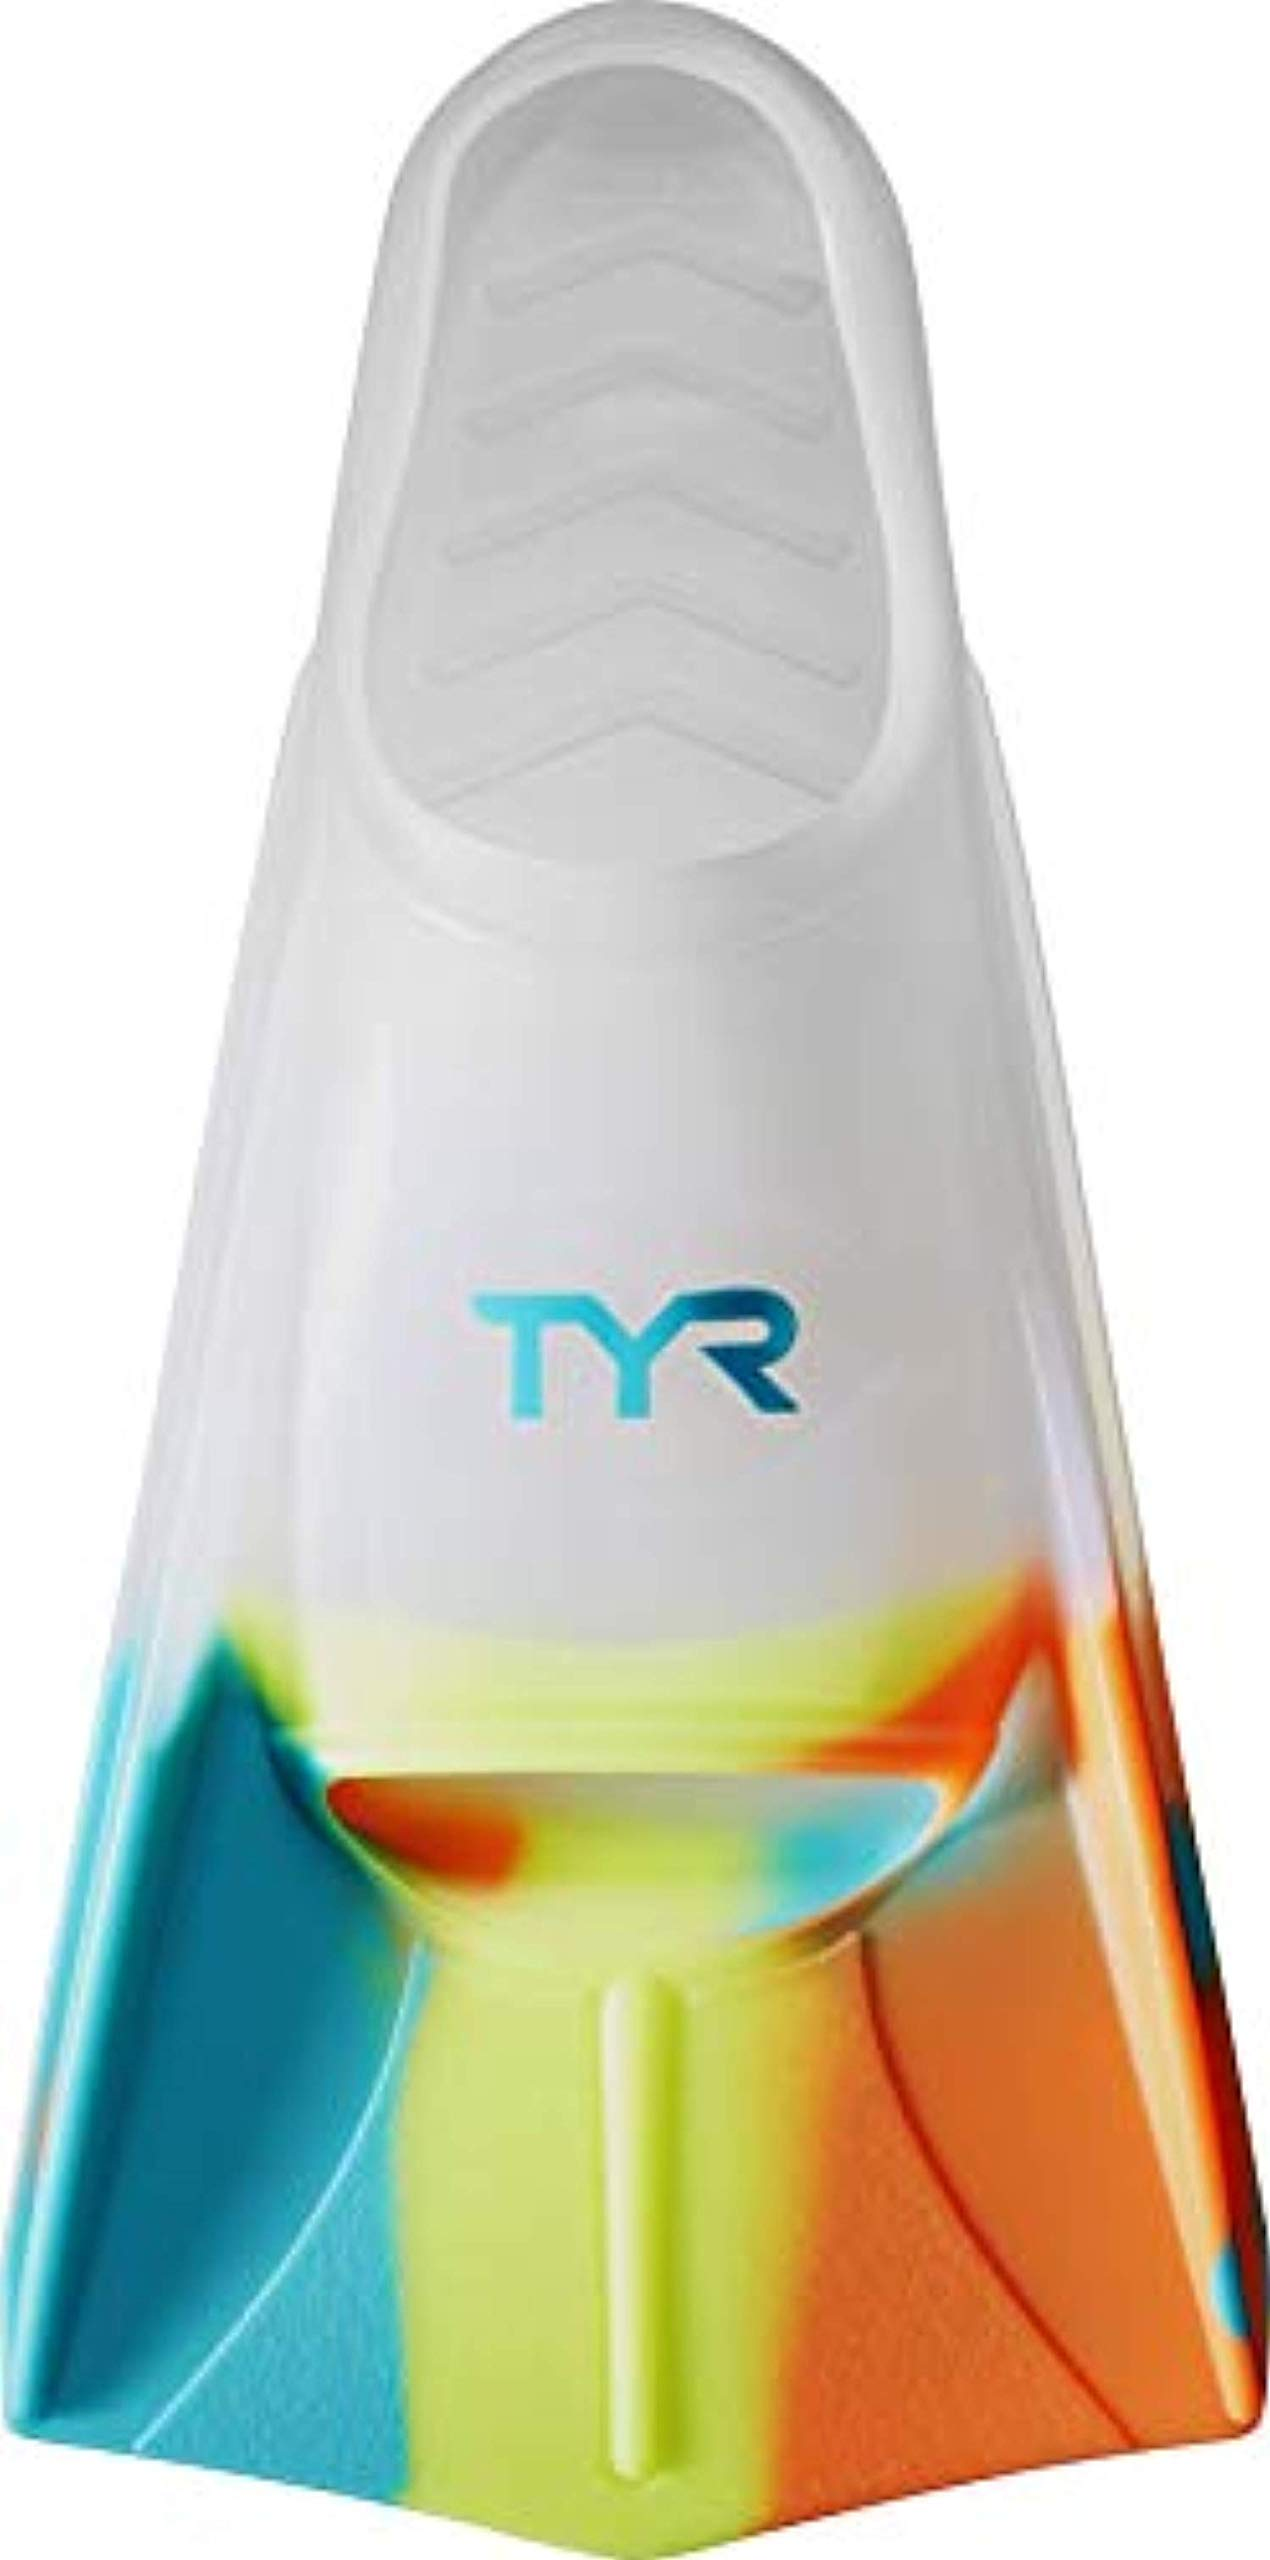 Swim Bundle: TYR Stryker Silicone Fin Clear M & Swimming Earplugs by Competition Swimwear